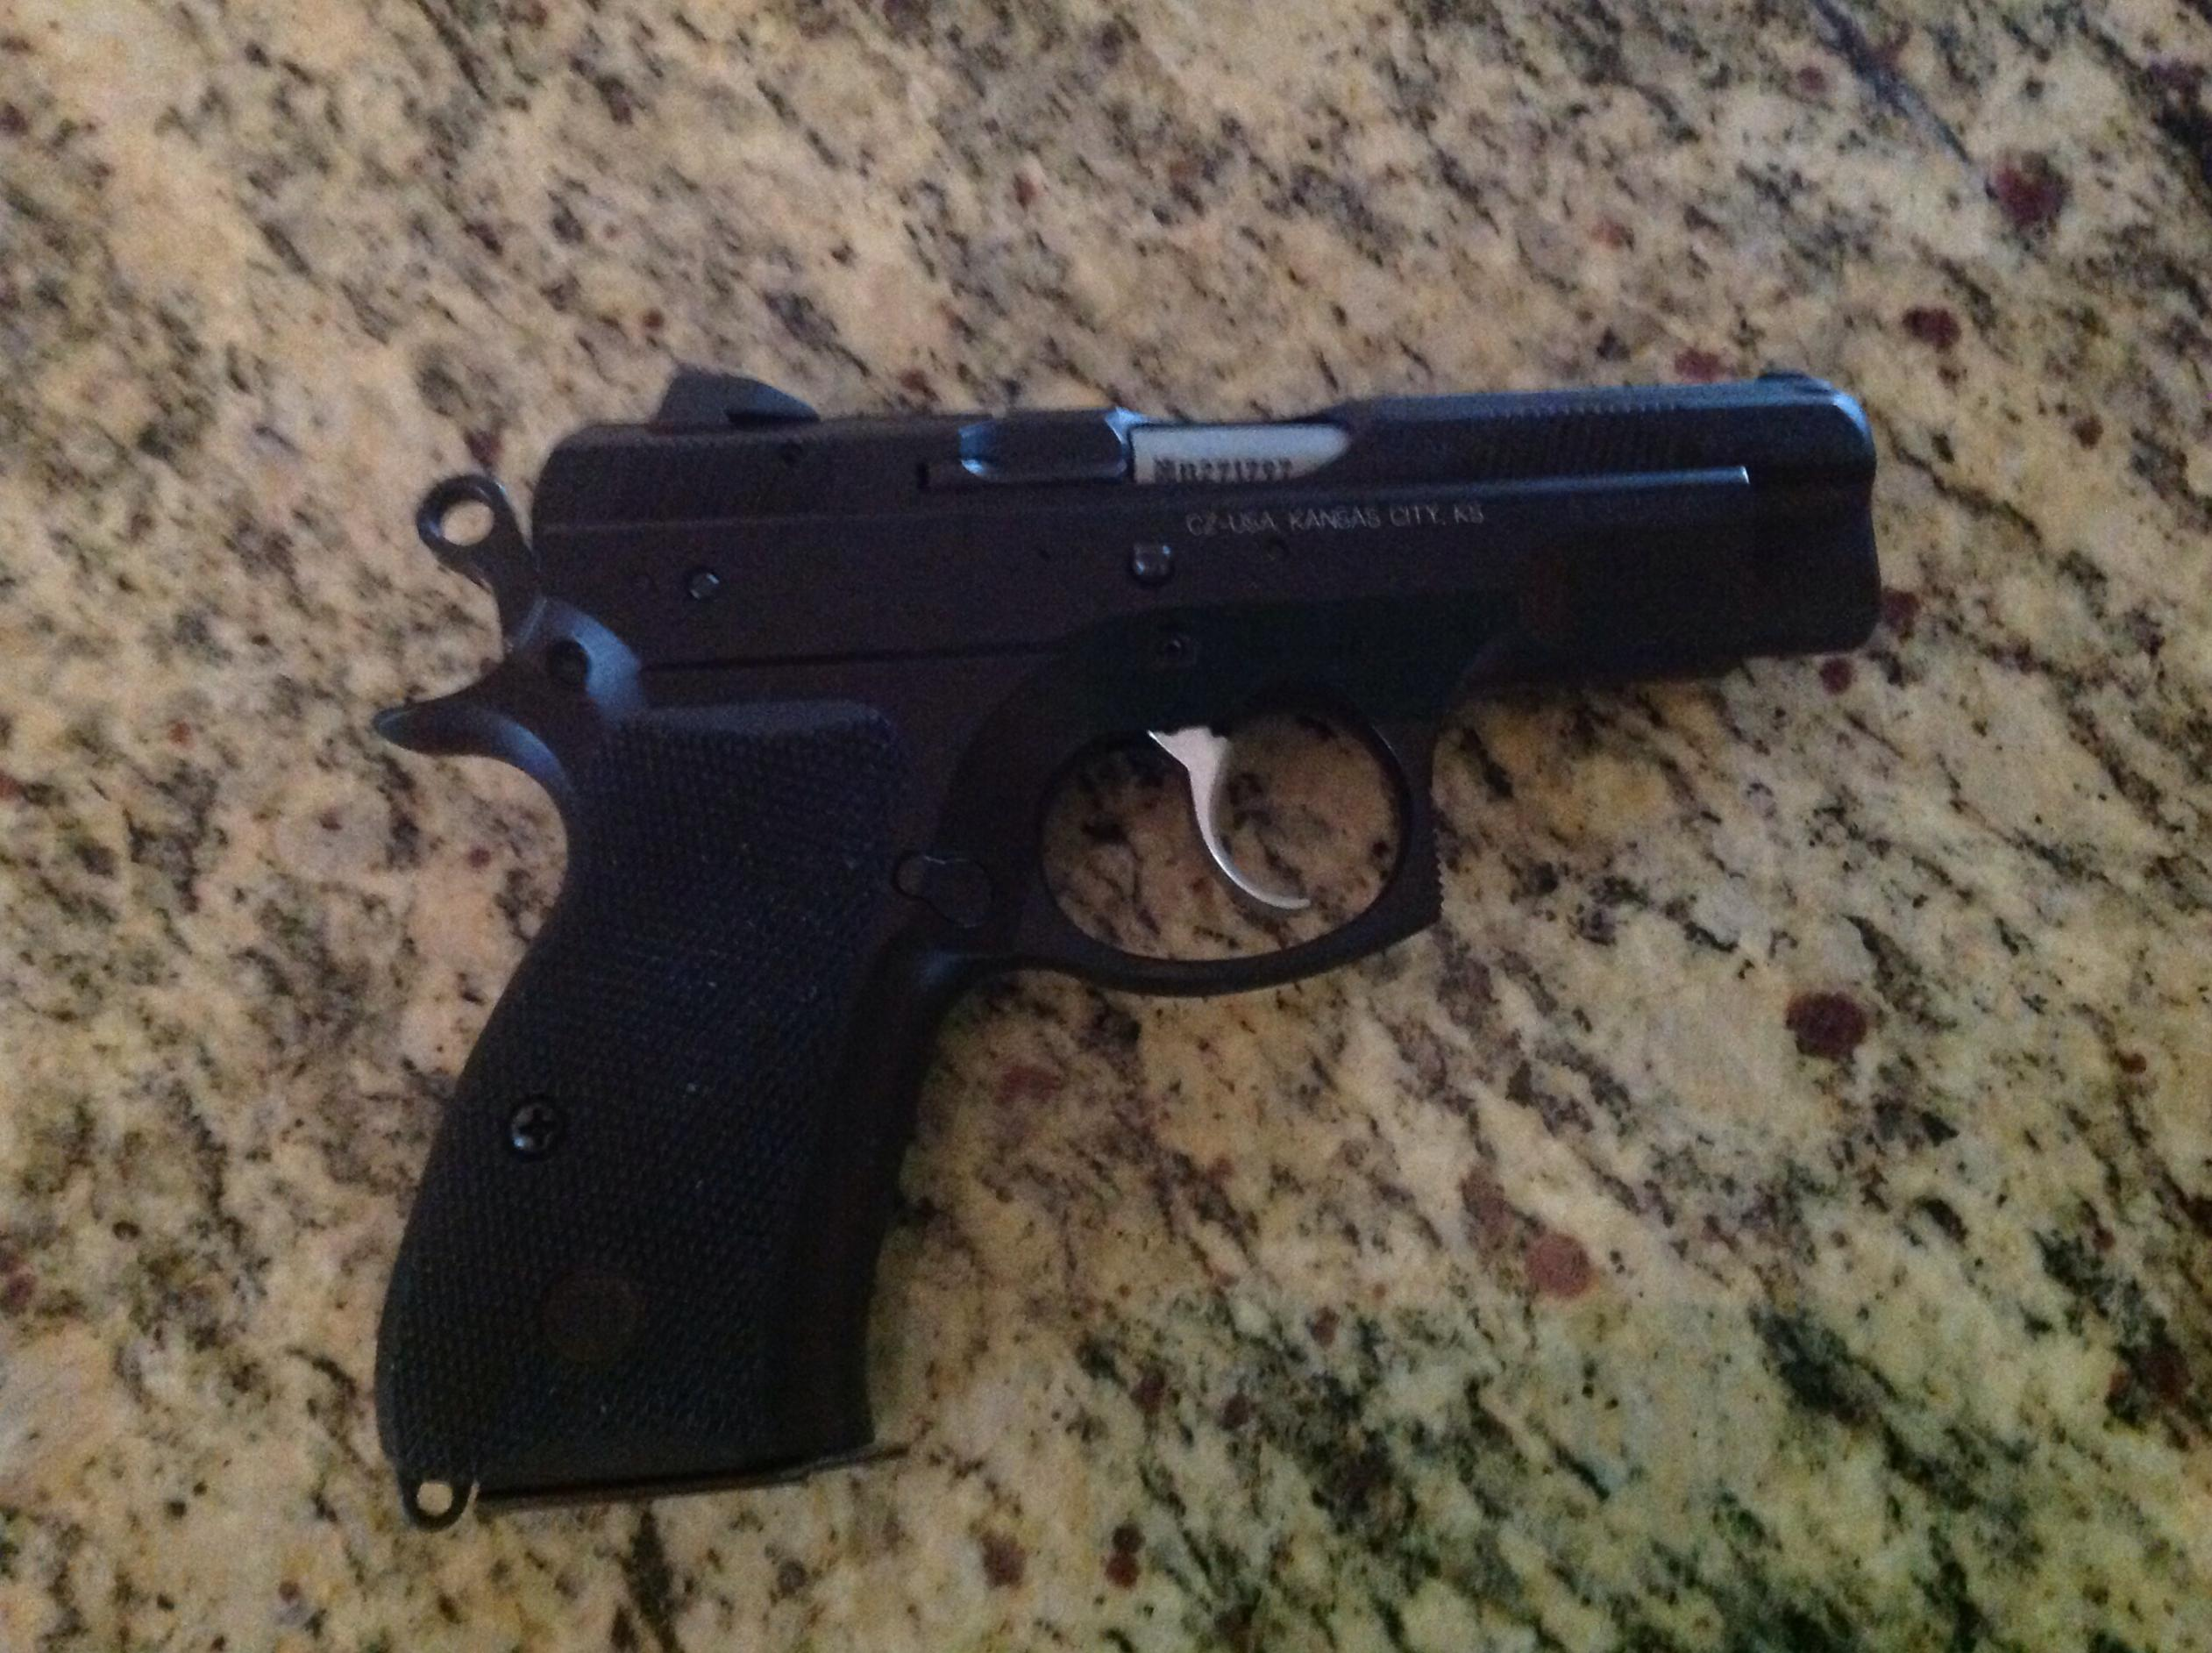 New CZ Compact to replace CZ 75 P01